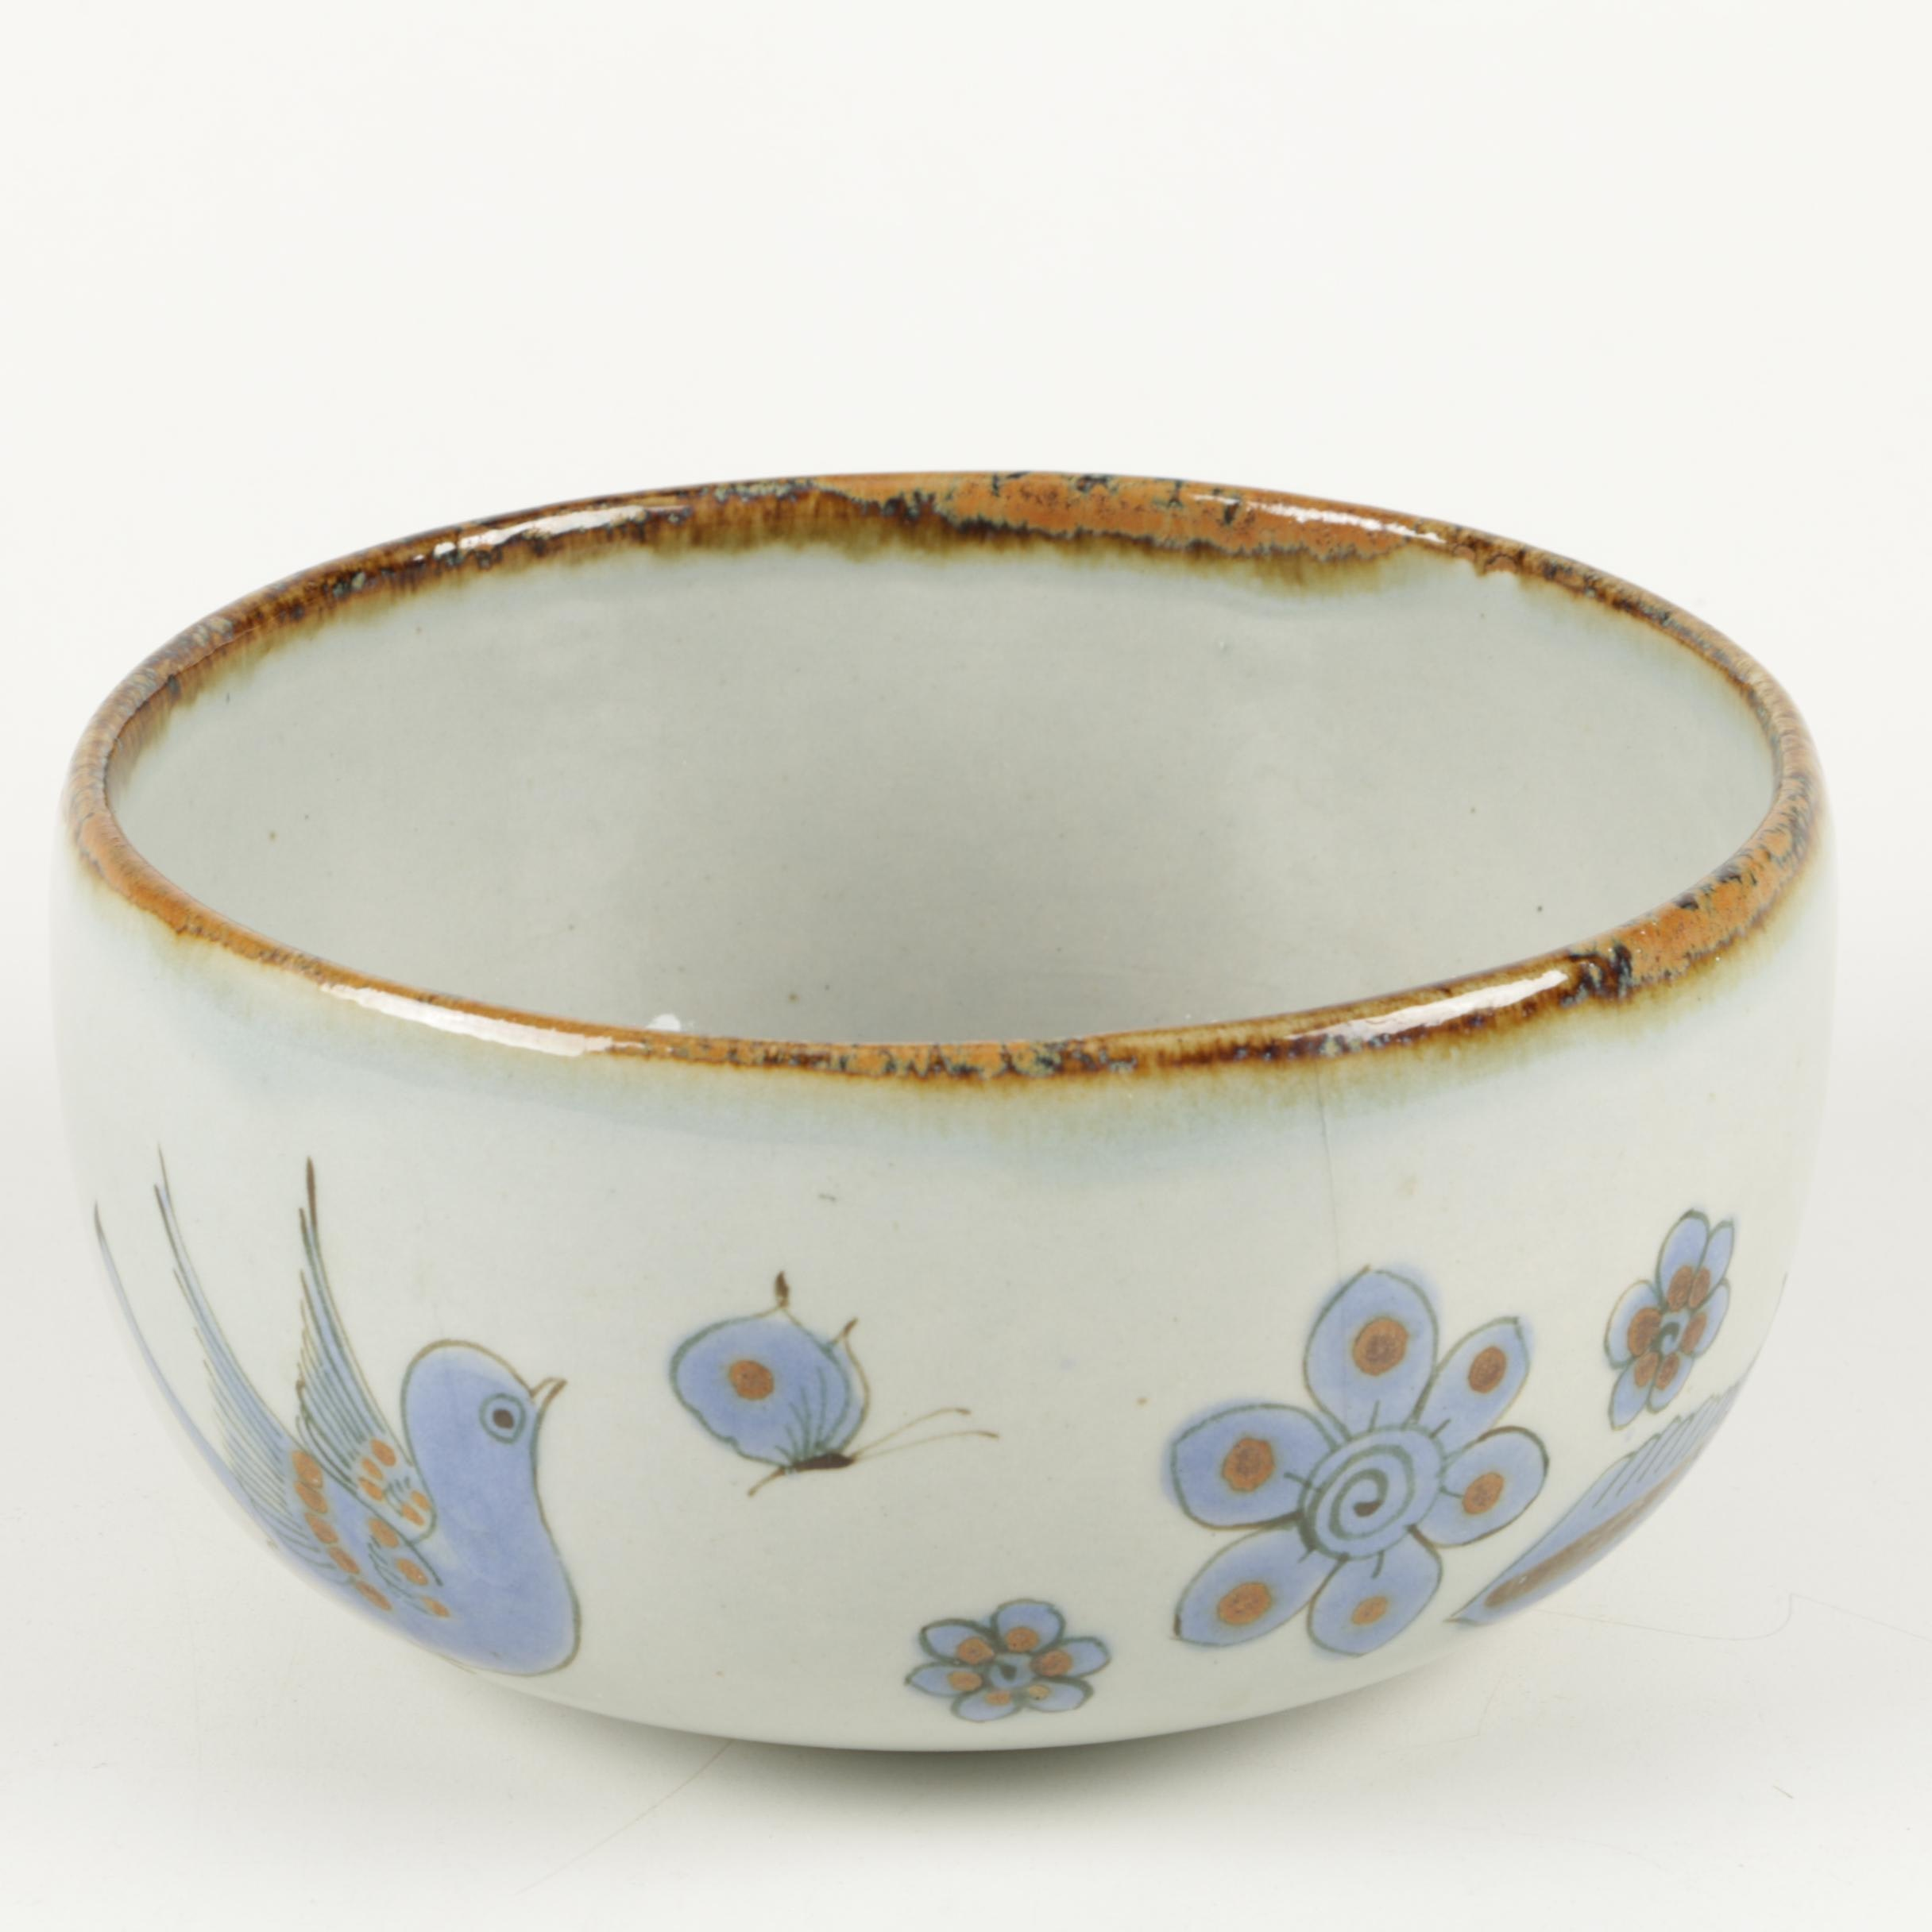 Hand-Painted Mexican Porcelain Serving Bowl